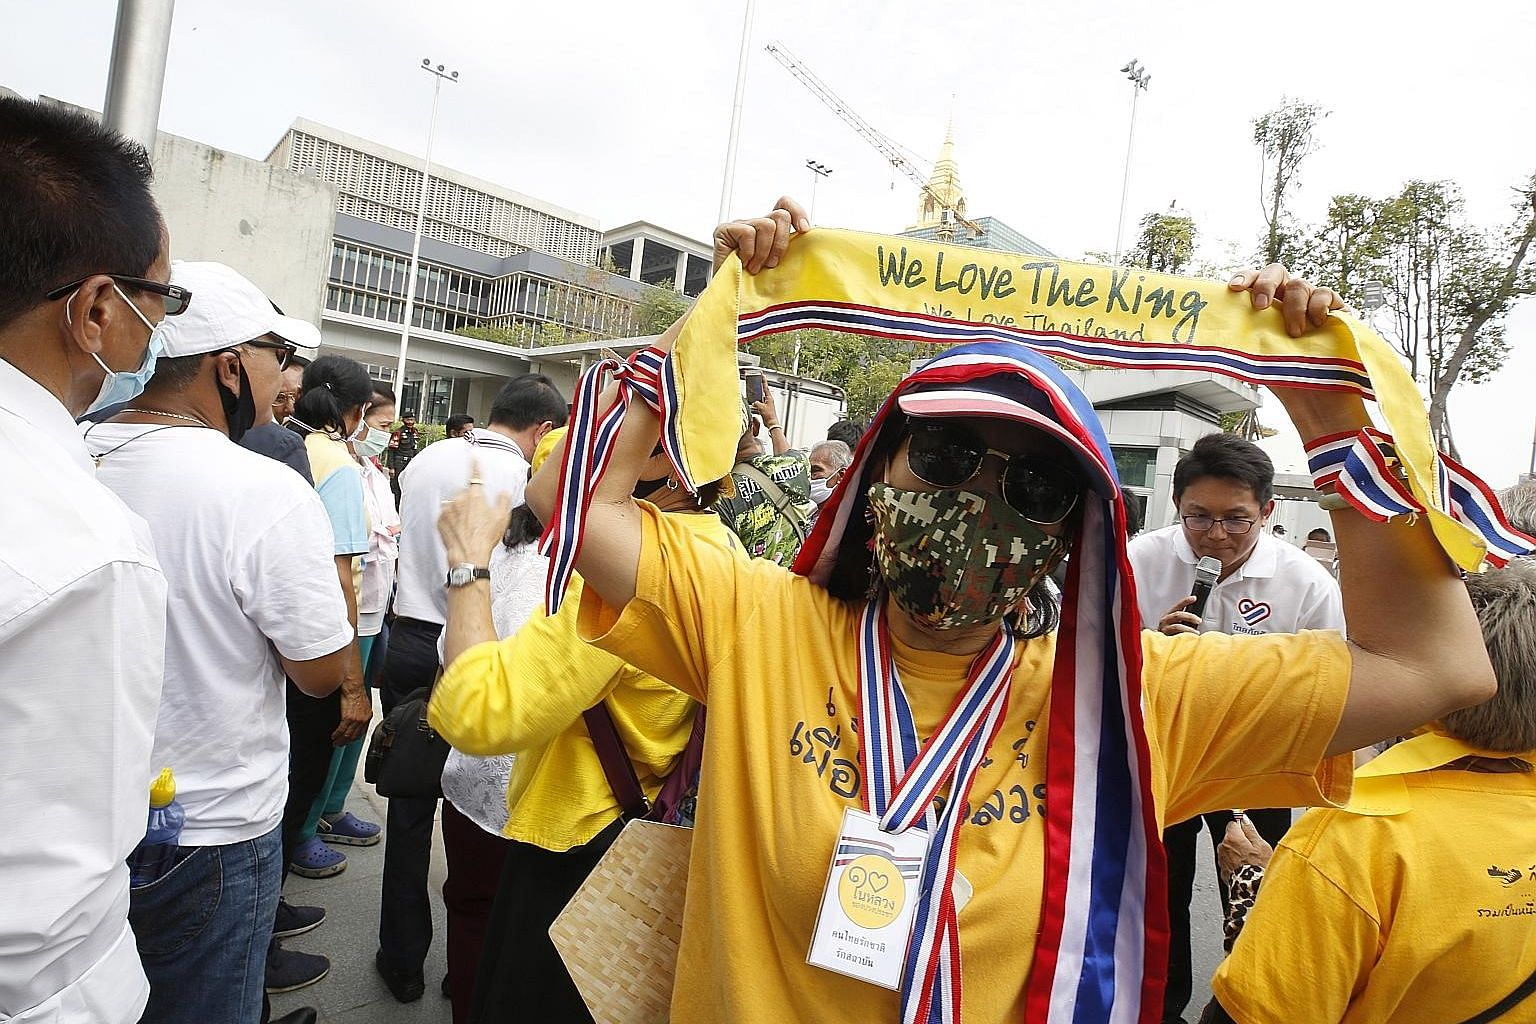 A Thai royalist and pro-government supporter showing support for King Maha Vajiralongkorn during a rally to oppose any amendments to the Constitution outside Parliament House in Bangkok yesterday.